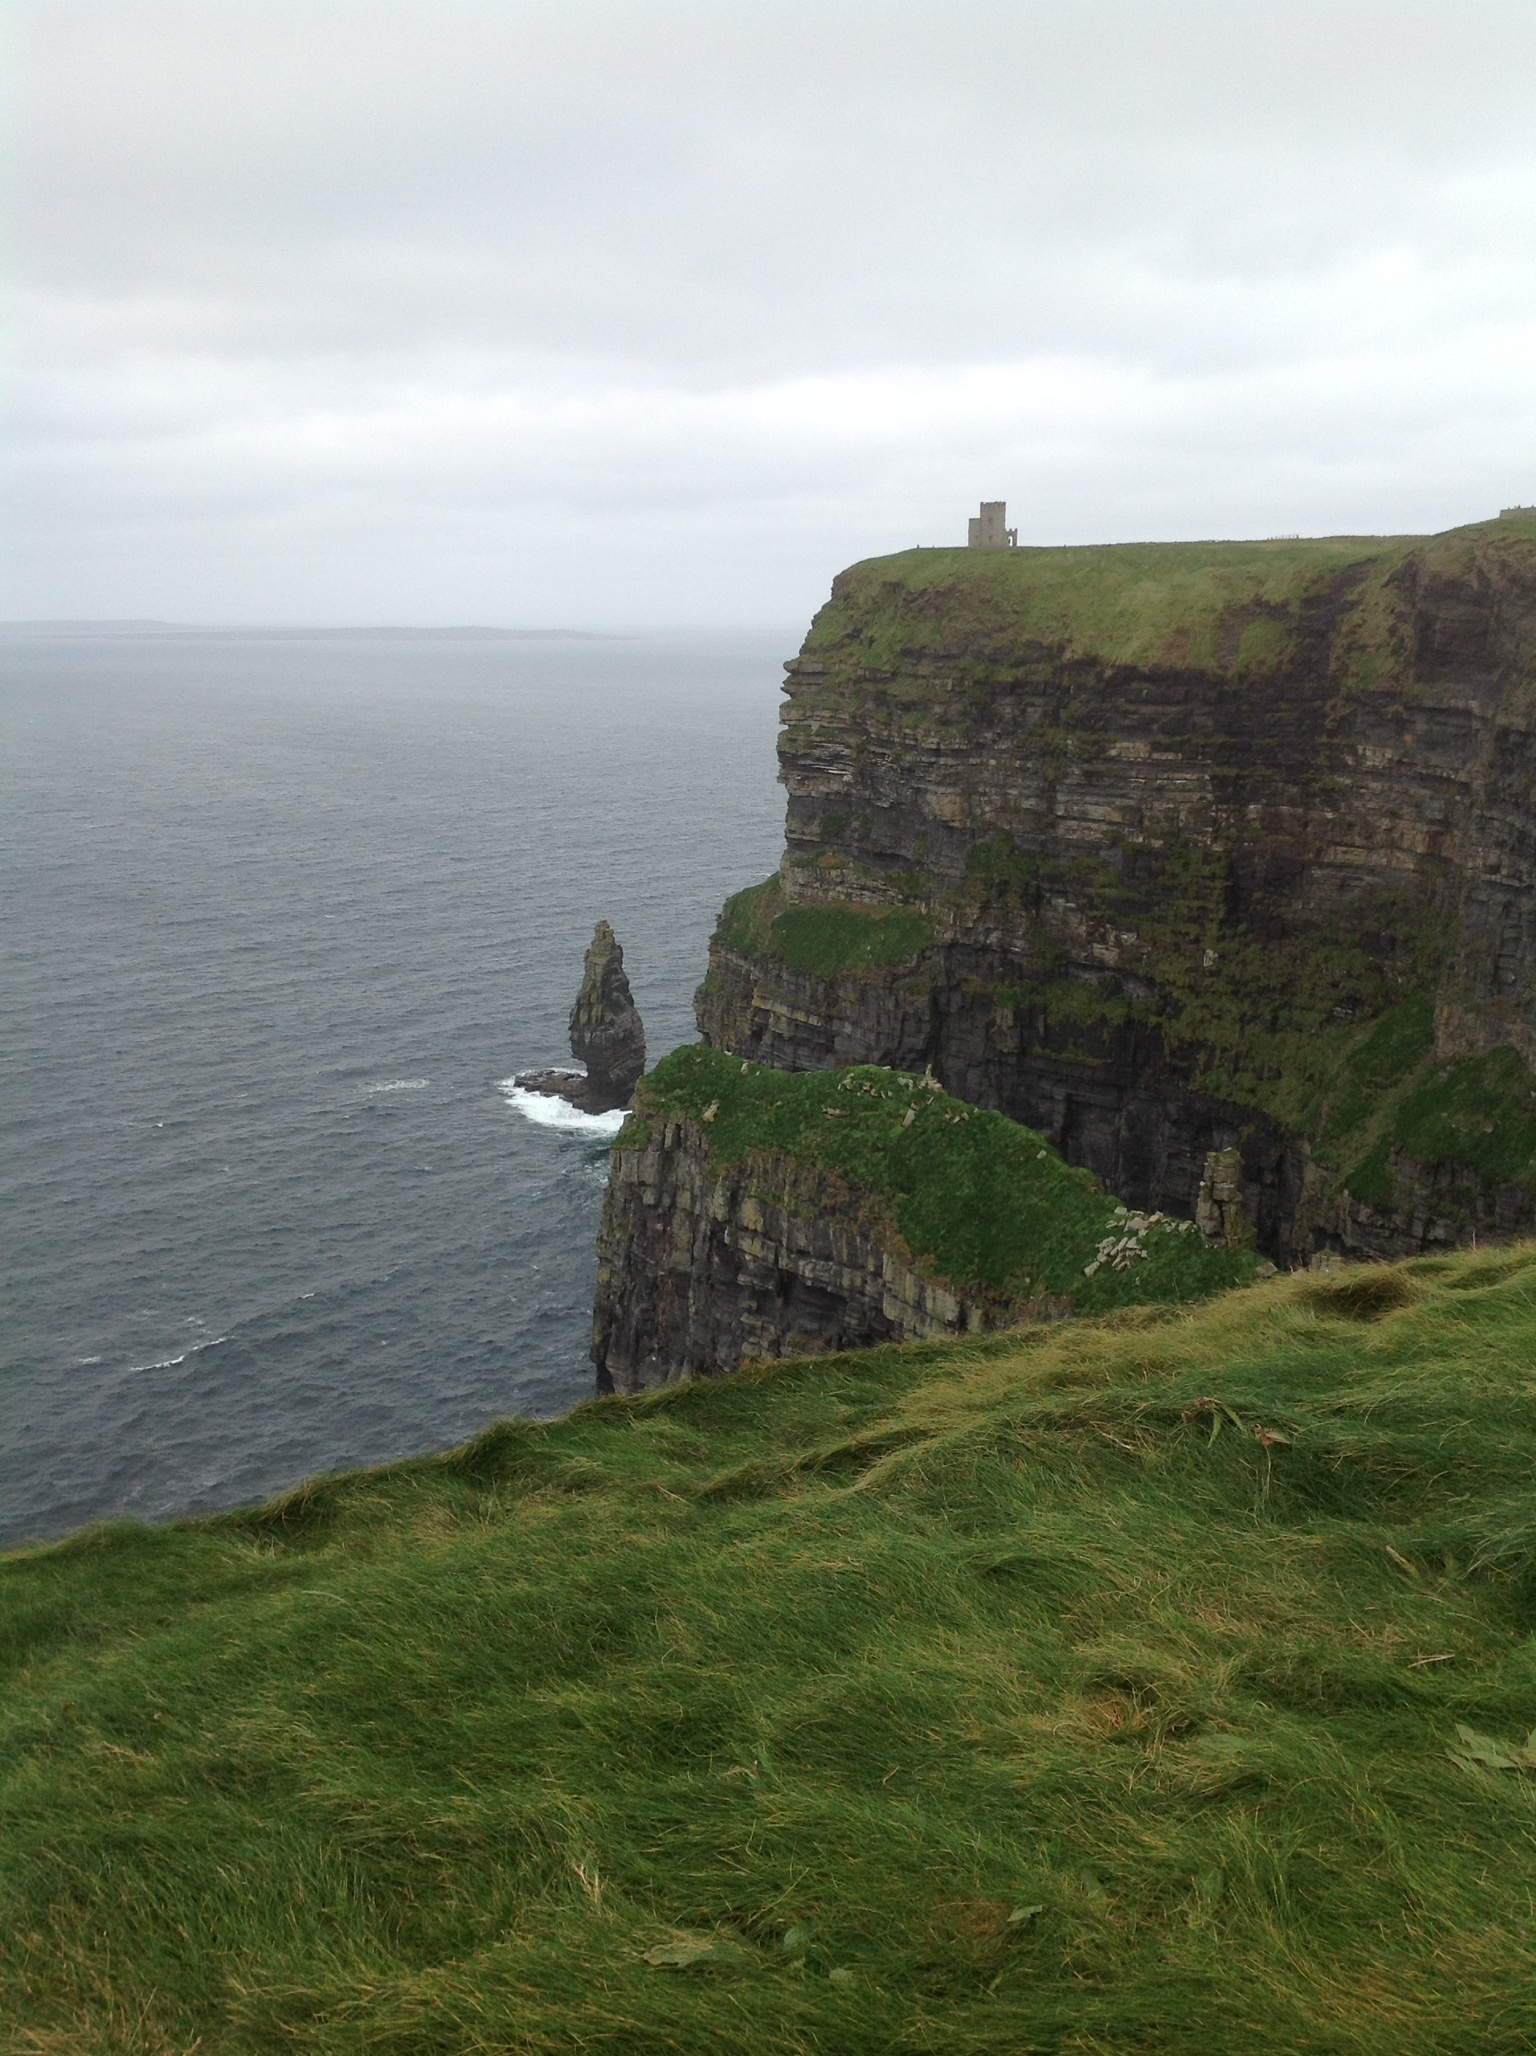 Cliffs of Moher, Ireland. 2012.